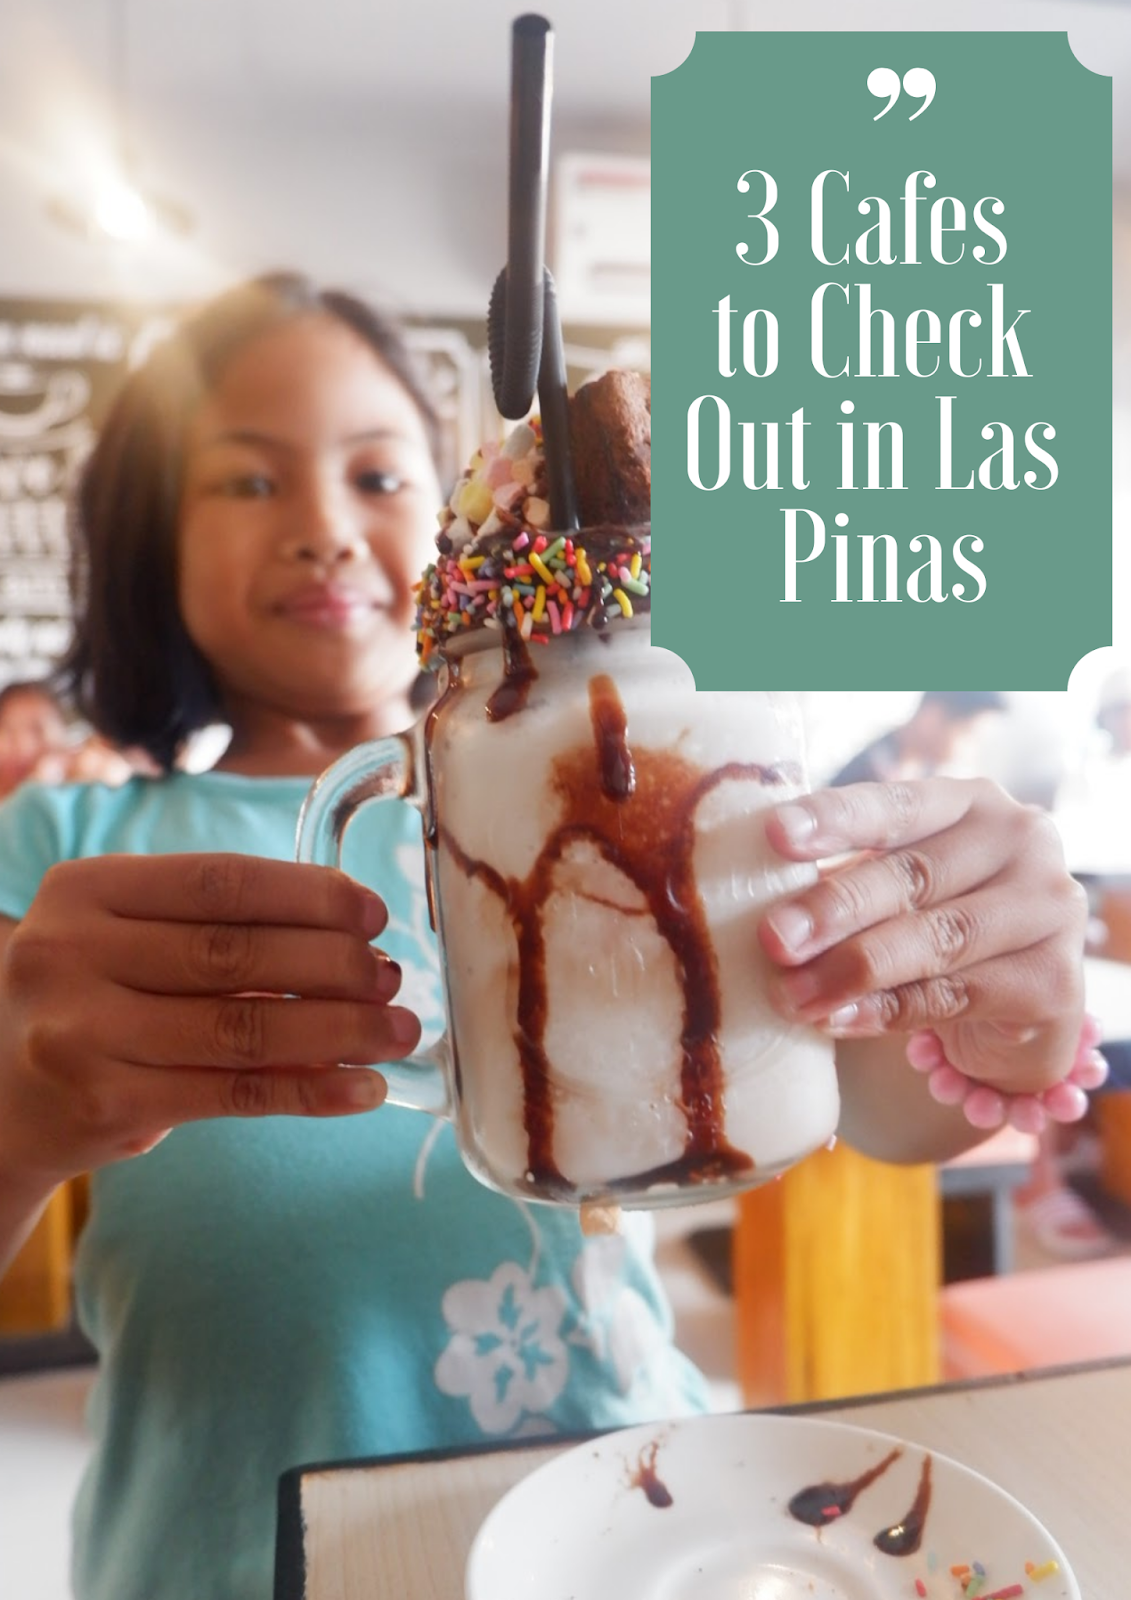 3 Cafes to Check Out in Las Pinas